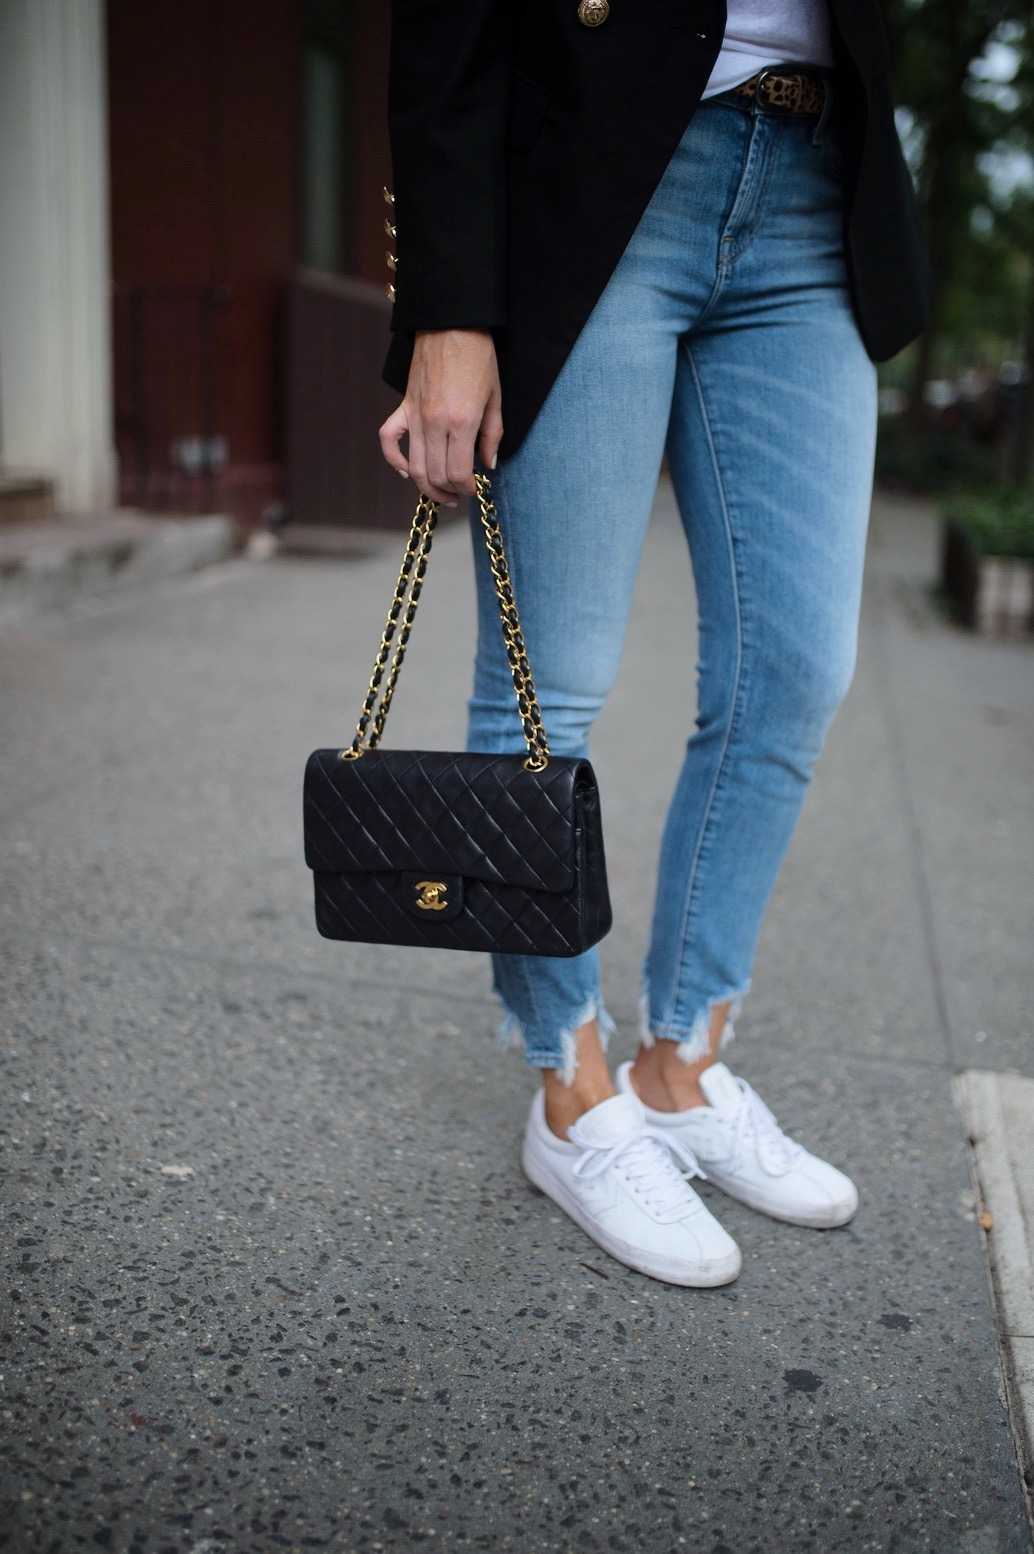 casual-outfit-ideas-blue-distressed-jeans-white-sneakers-balmain-blazer-chanel-bag-fashion-blogger-new-york-street-style-outfit-lauren-slade-style-elixir-blog-4